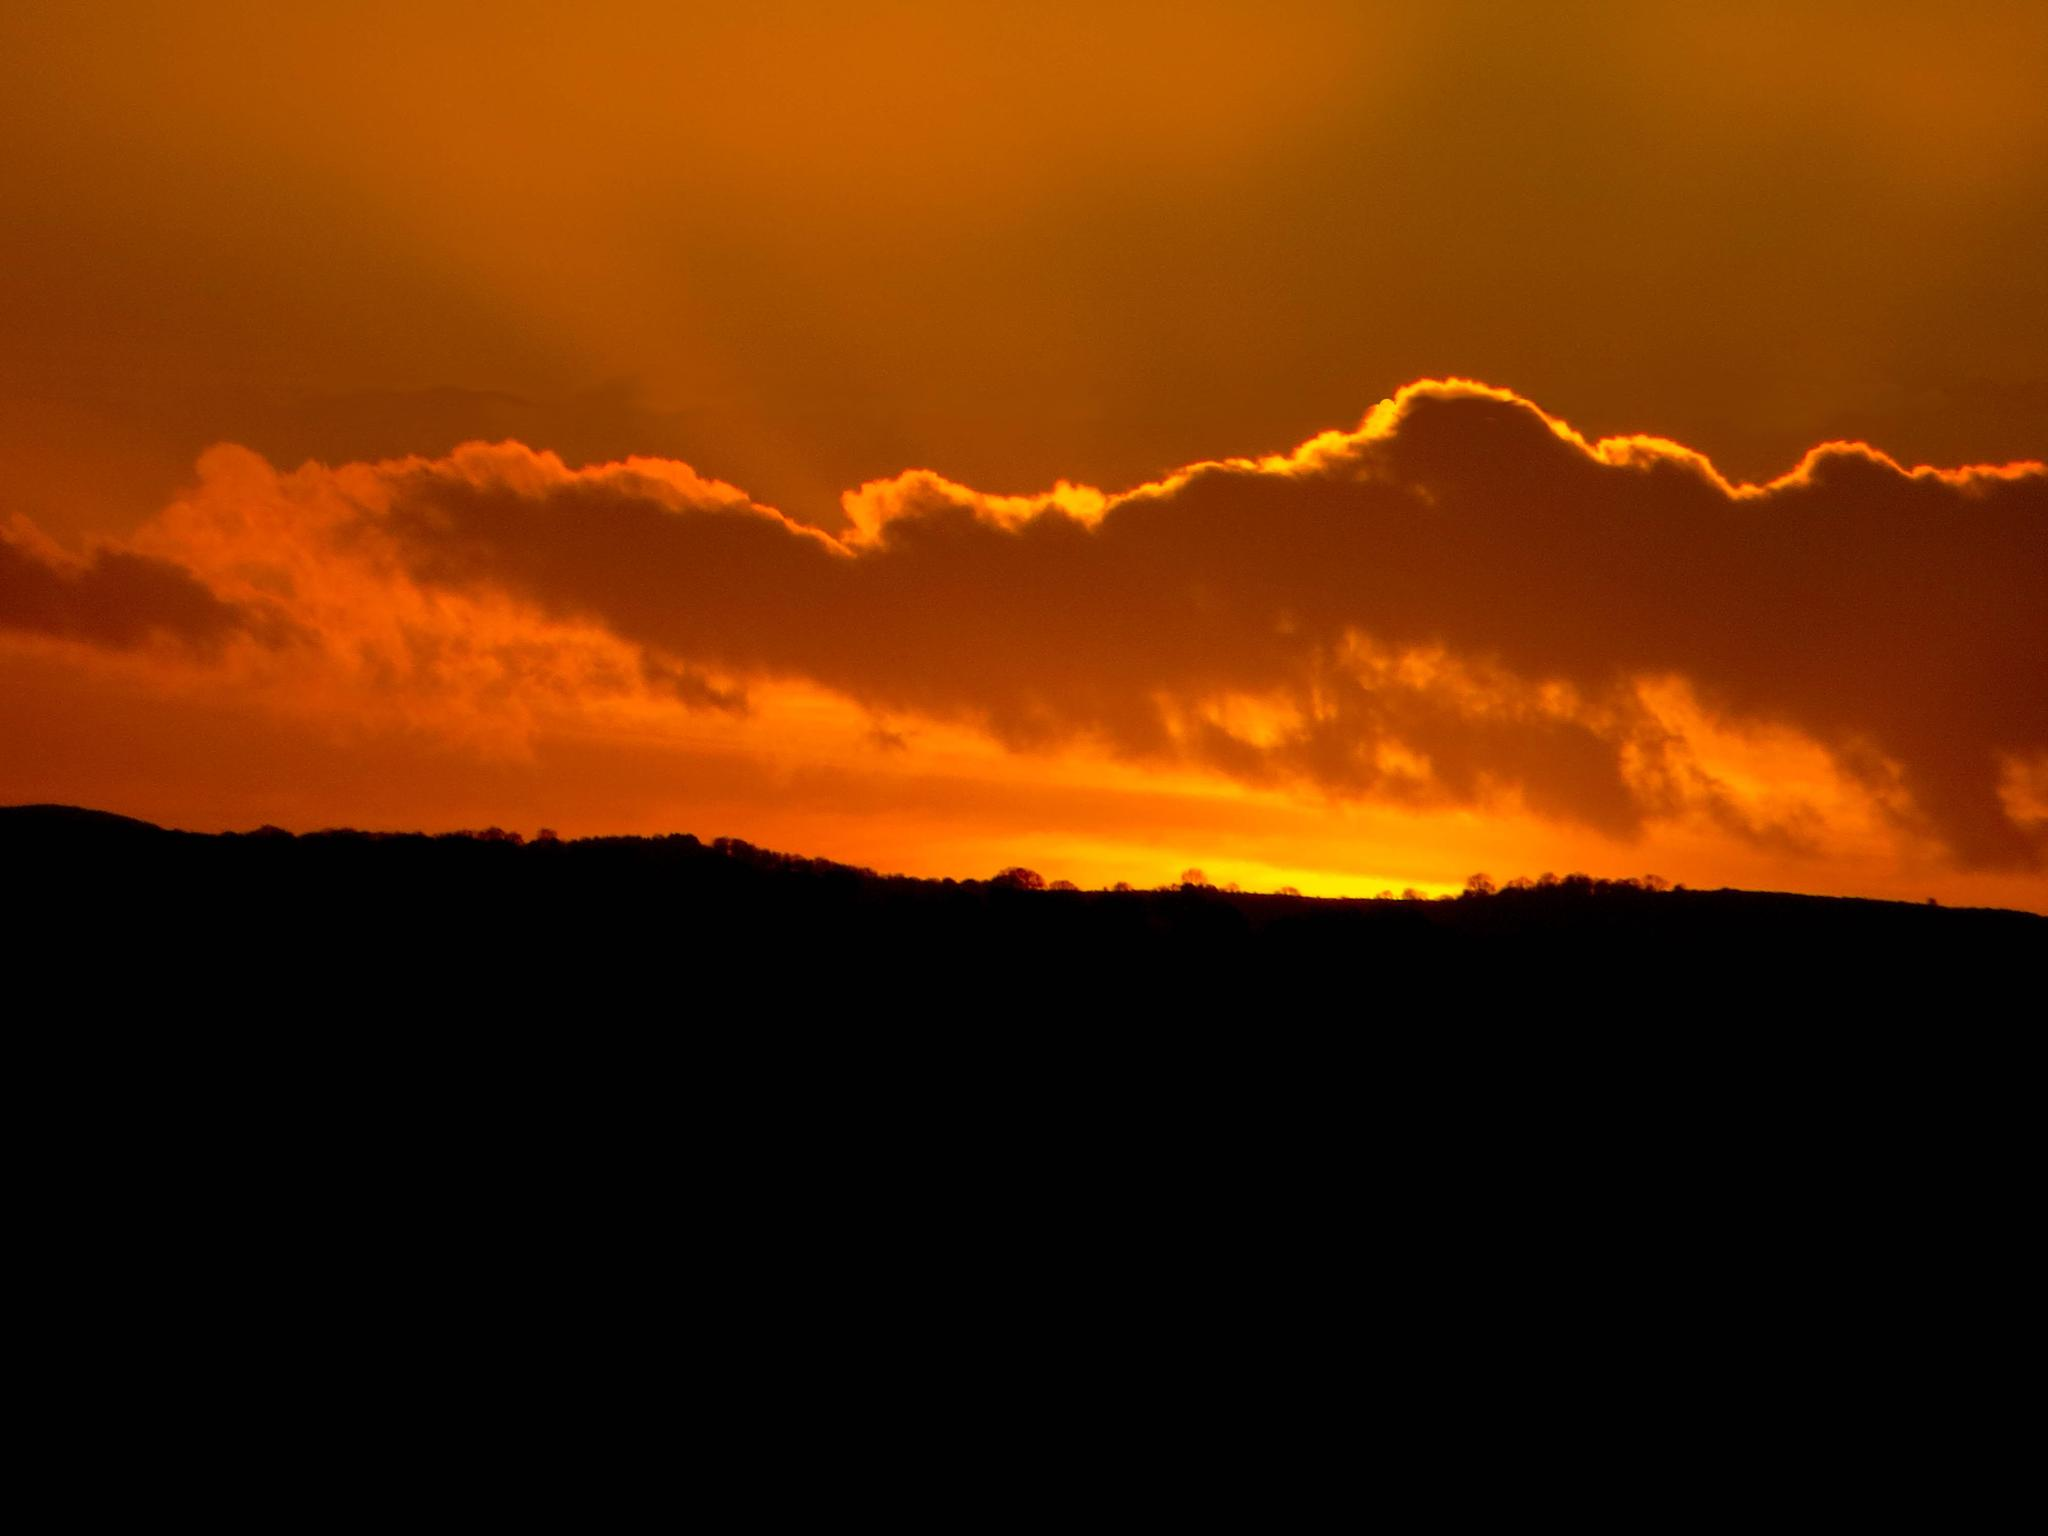 Welsh Sunset by SharonD